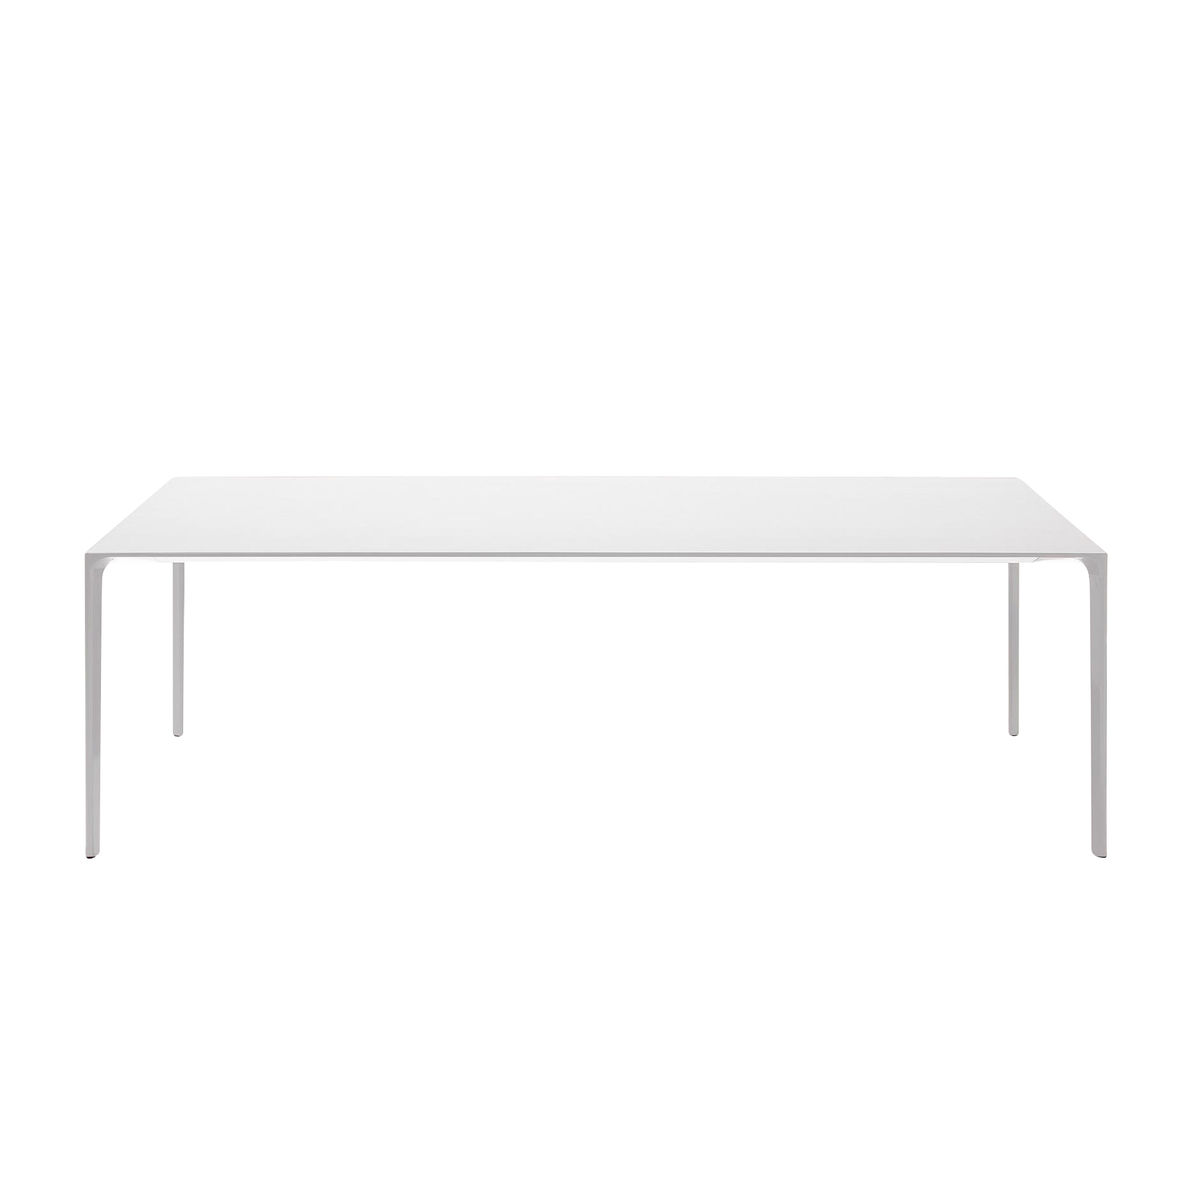 Habitat dining tables images suki drop leaf table from for Luminaire salle a manger ikea